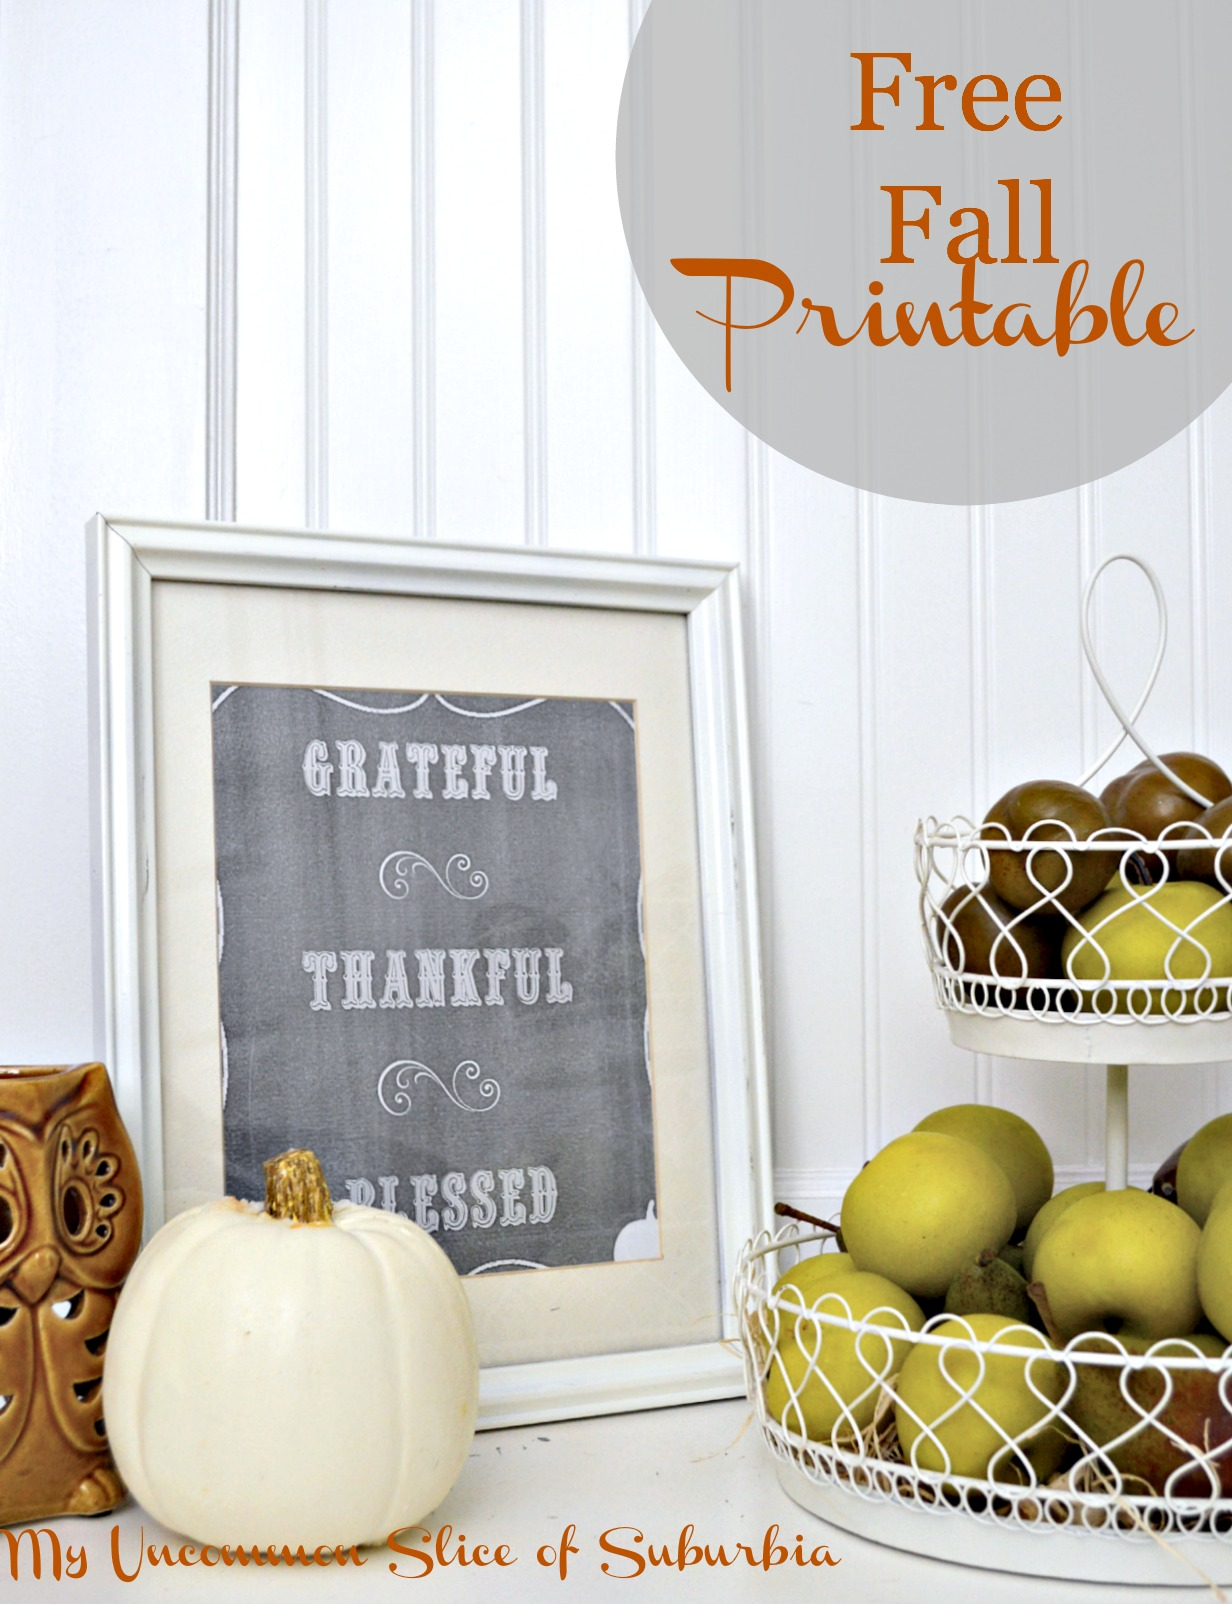 Simple Fall Printable And Vignette